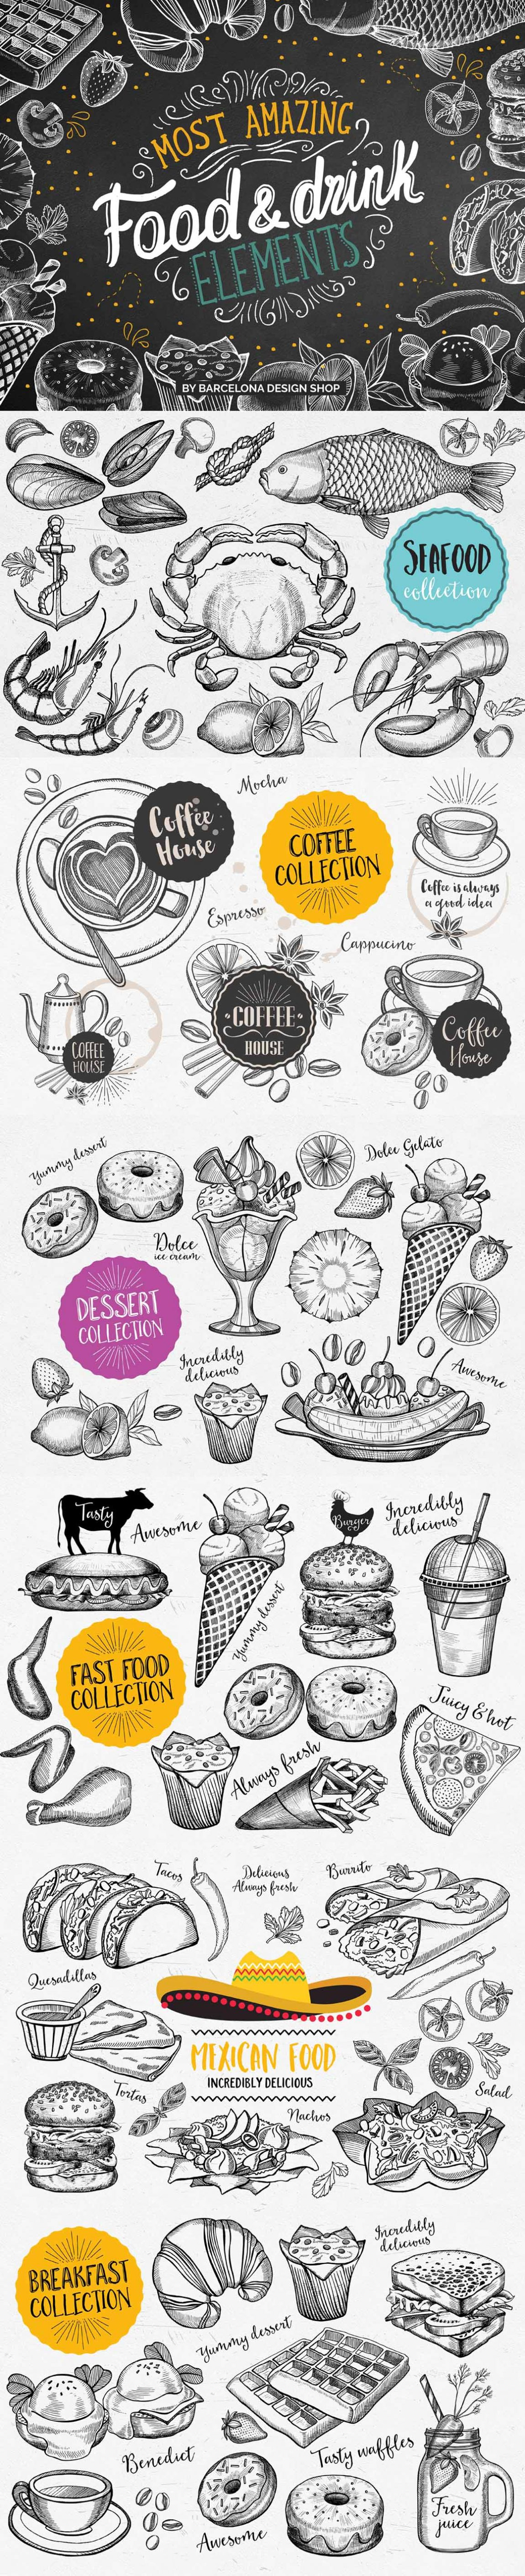 food hand drawn illustrations vegetables fruits fastfood dessert seafood